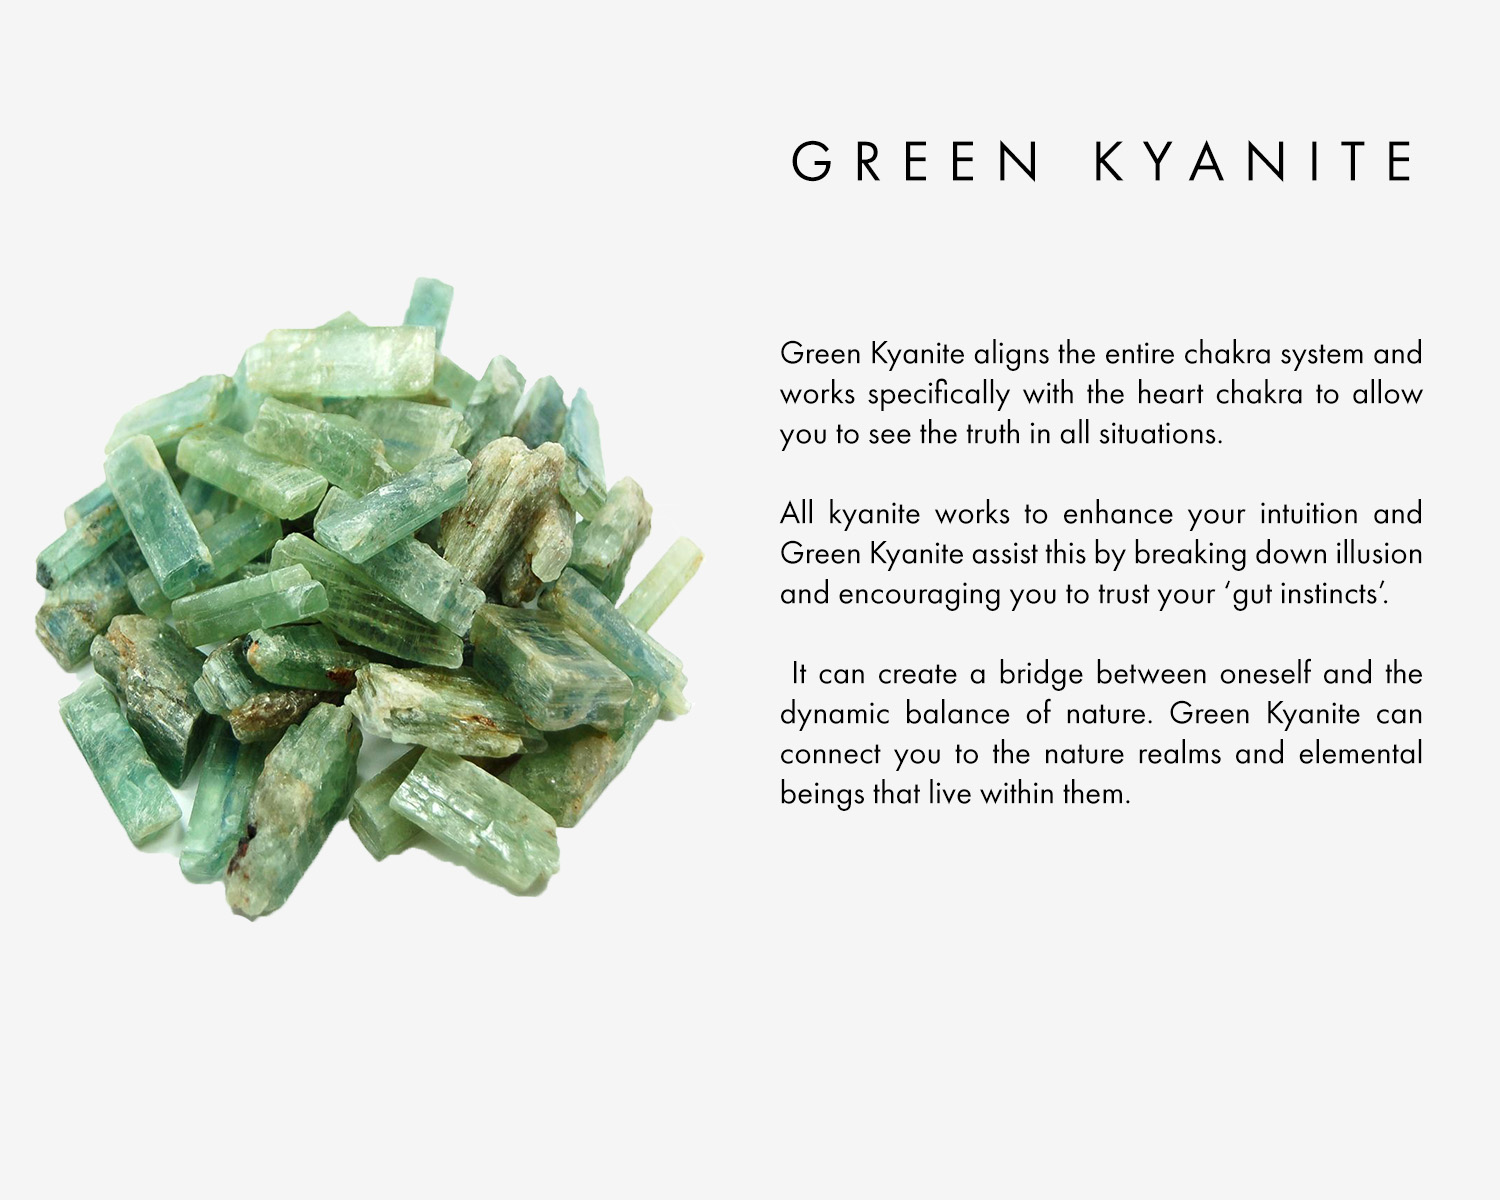 Green Kyanite aligns the entire chakra system but works specifically with the heart chakra to allow you to see the truth in all situations. All kyanite works to enhance your intuition and Green Kyanite assist this by breaking down illusion and encouraging you to trust your 'gut instincts'.  It can create a bridge between oneself and the dynamic balance of nature. Green Kyanite can connect you to the nature realms and elemental beings that live within them.